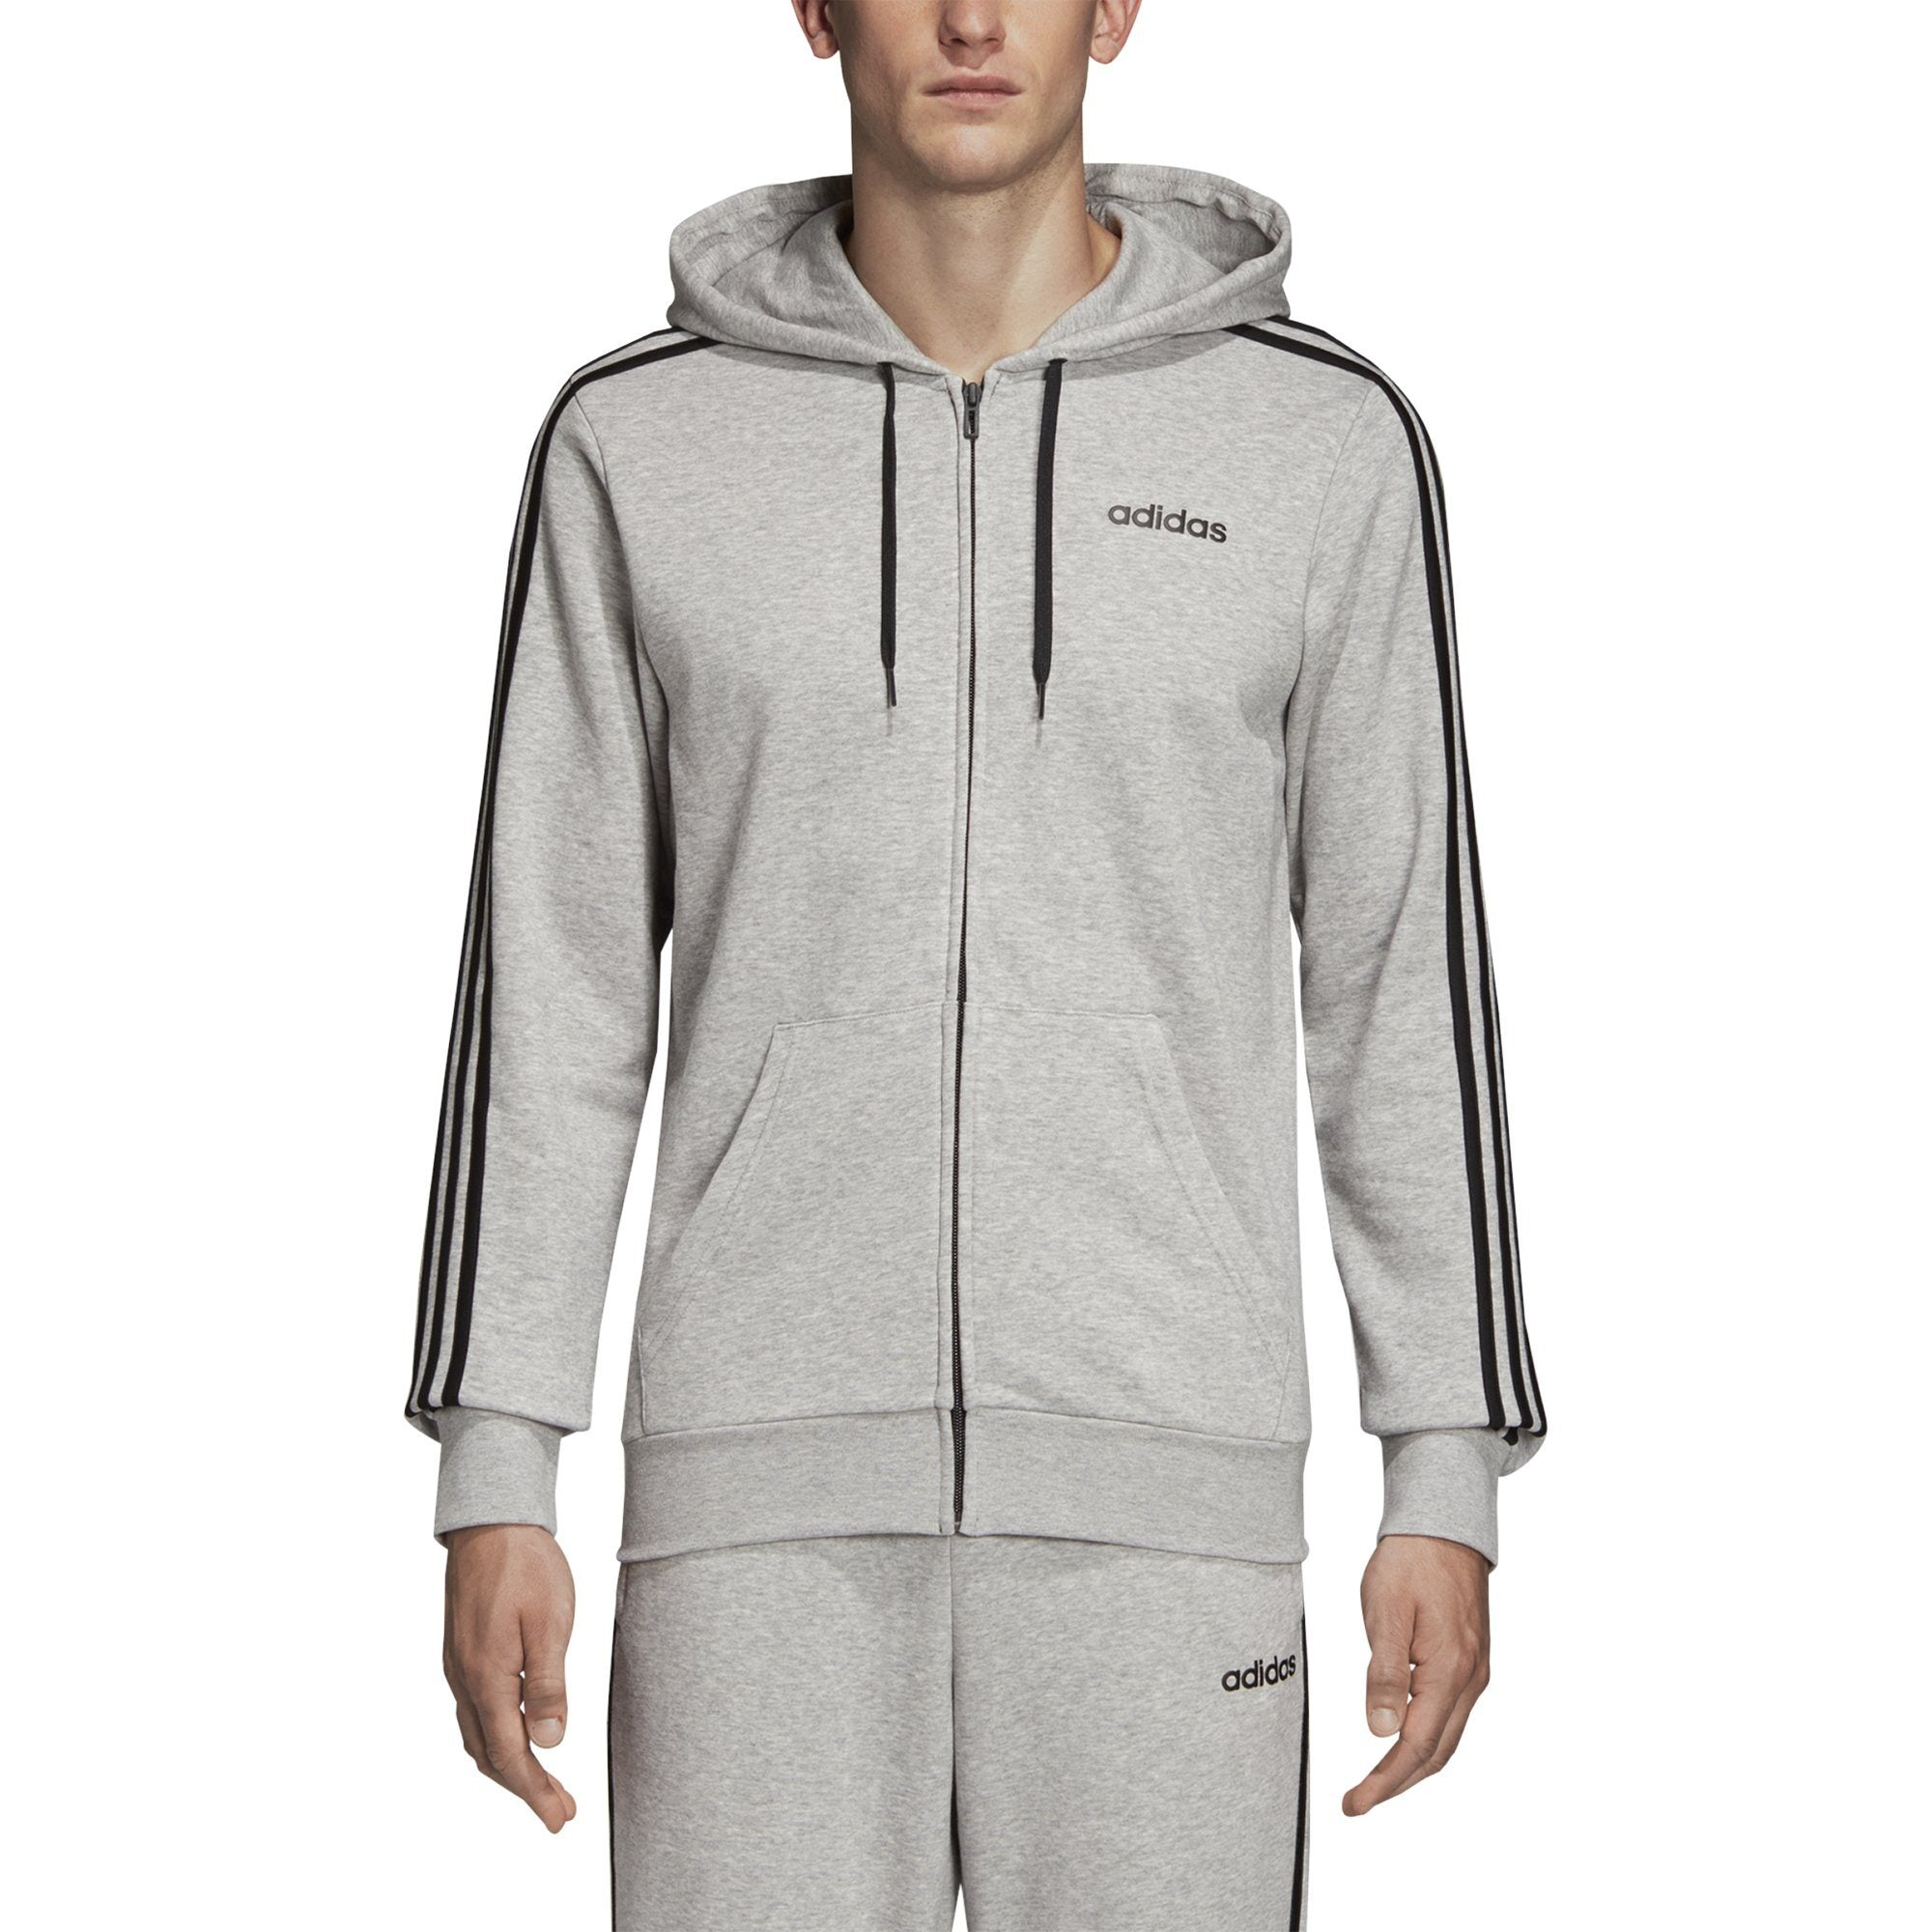 Adidas Mens Essentials 3-Stripes Track Jacket - medium grey heather-black Mens Apparel Adidas